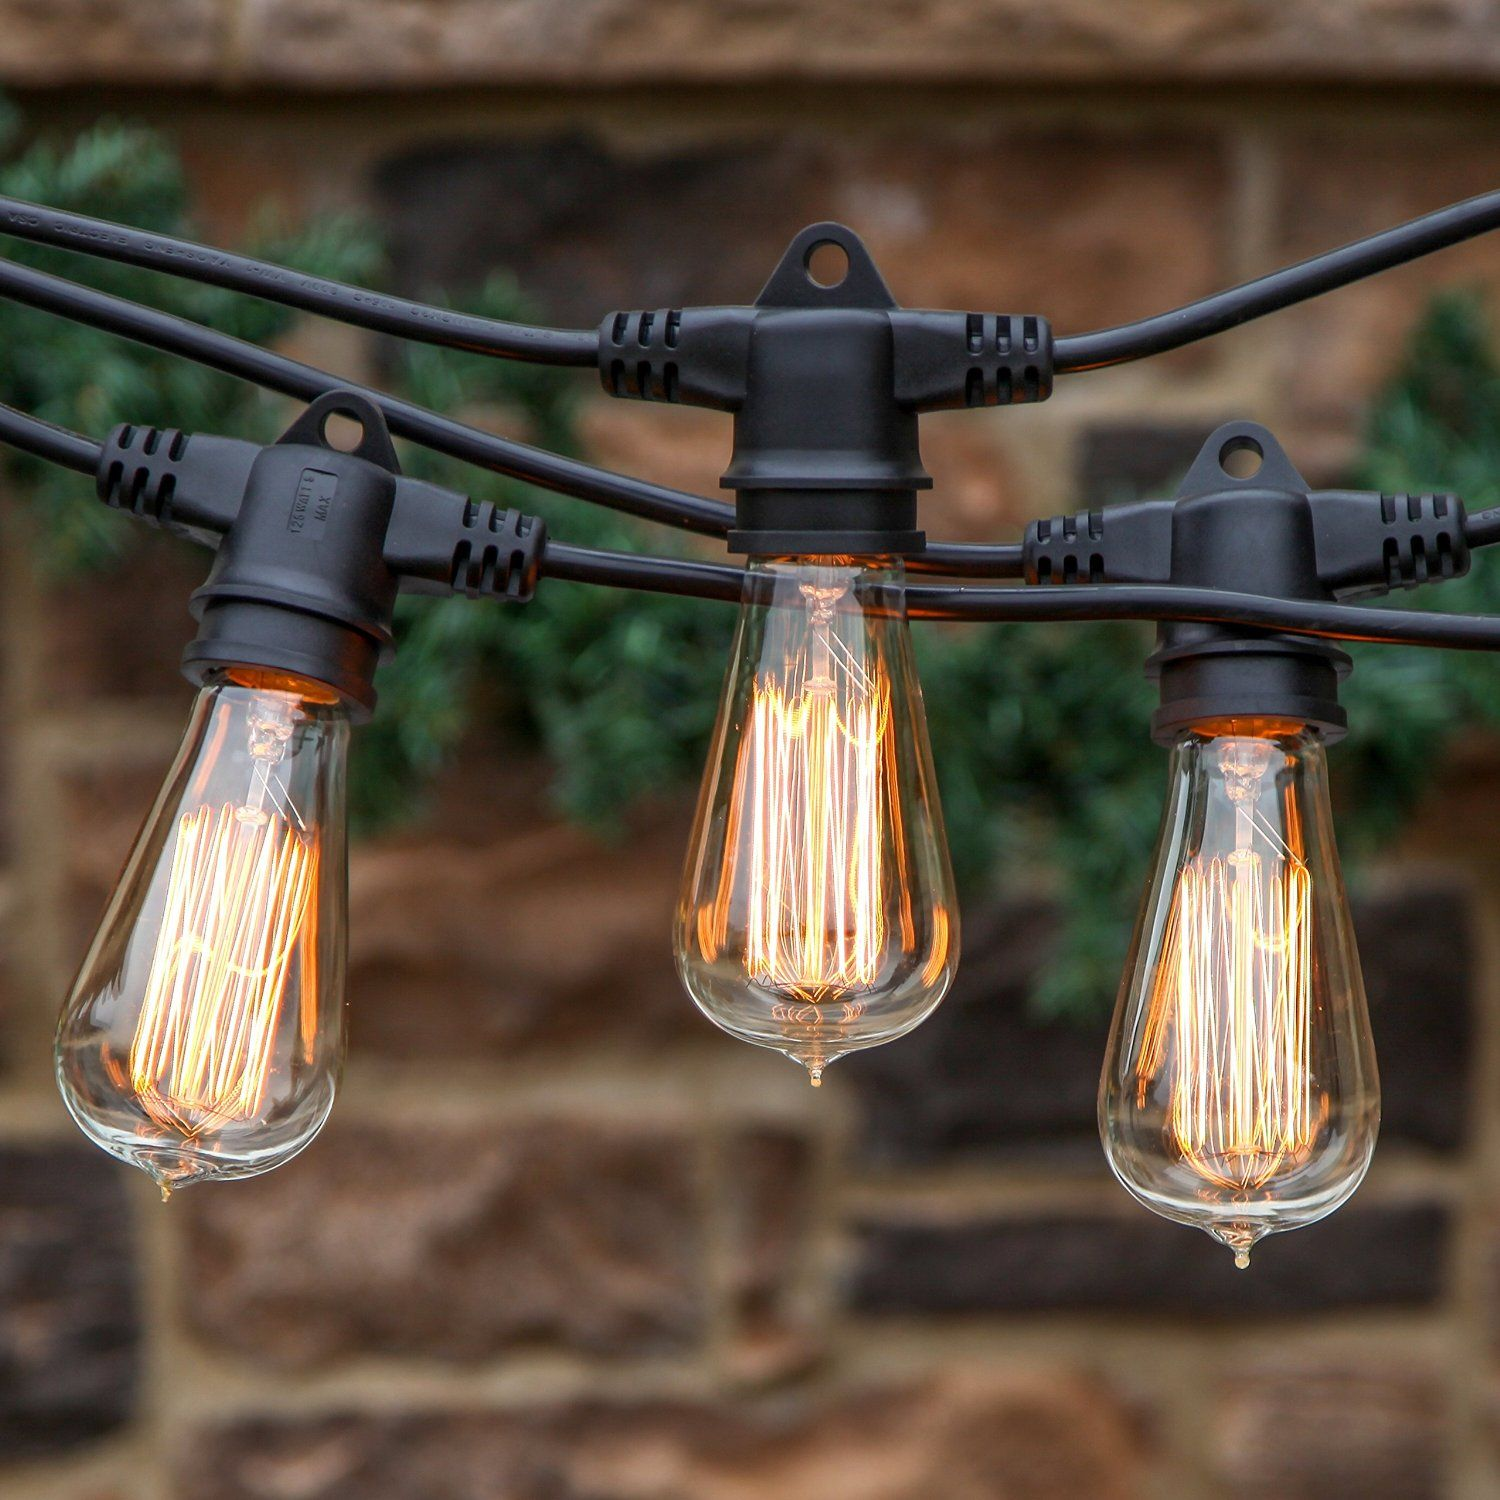 48 Ft Market Cafe Edison Vintage Bistro Weatherproof Strand for Patio Garden Porch Backyard Party Deck Yard Brightech Ambience Pro Commercial Grade Outdoor Light Strand Non Hanging Sockets Black